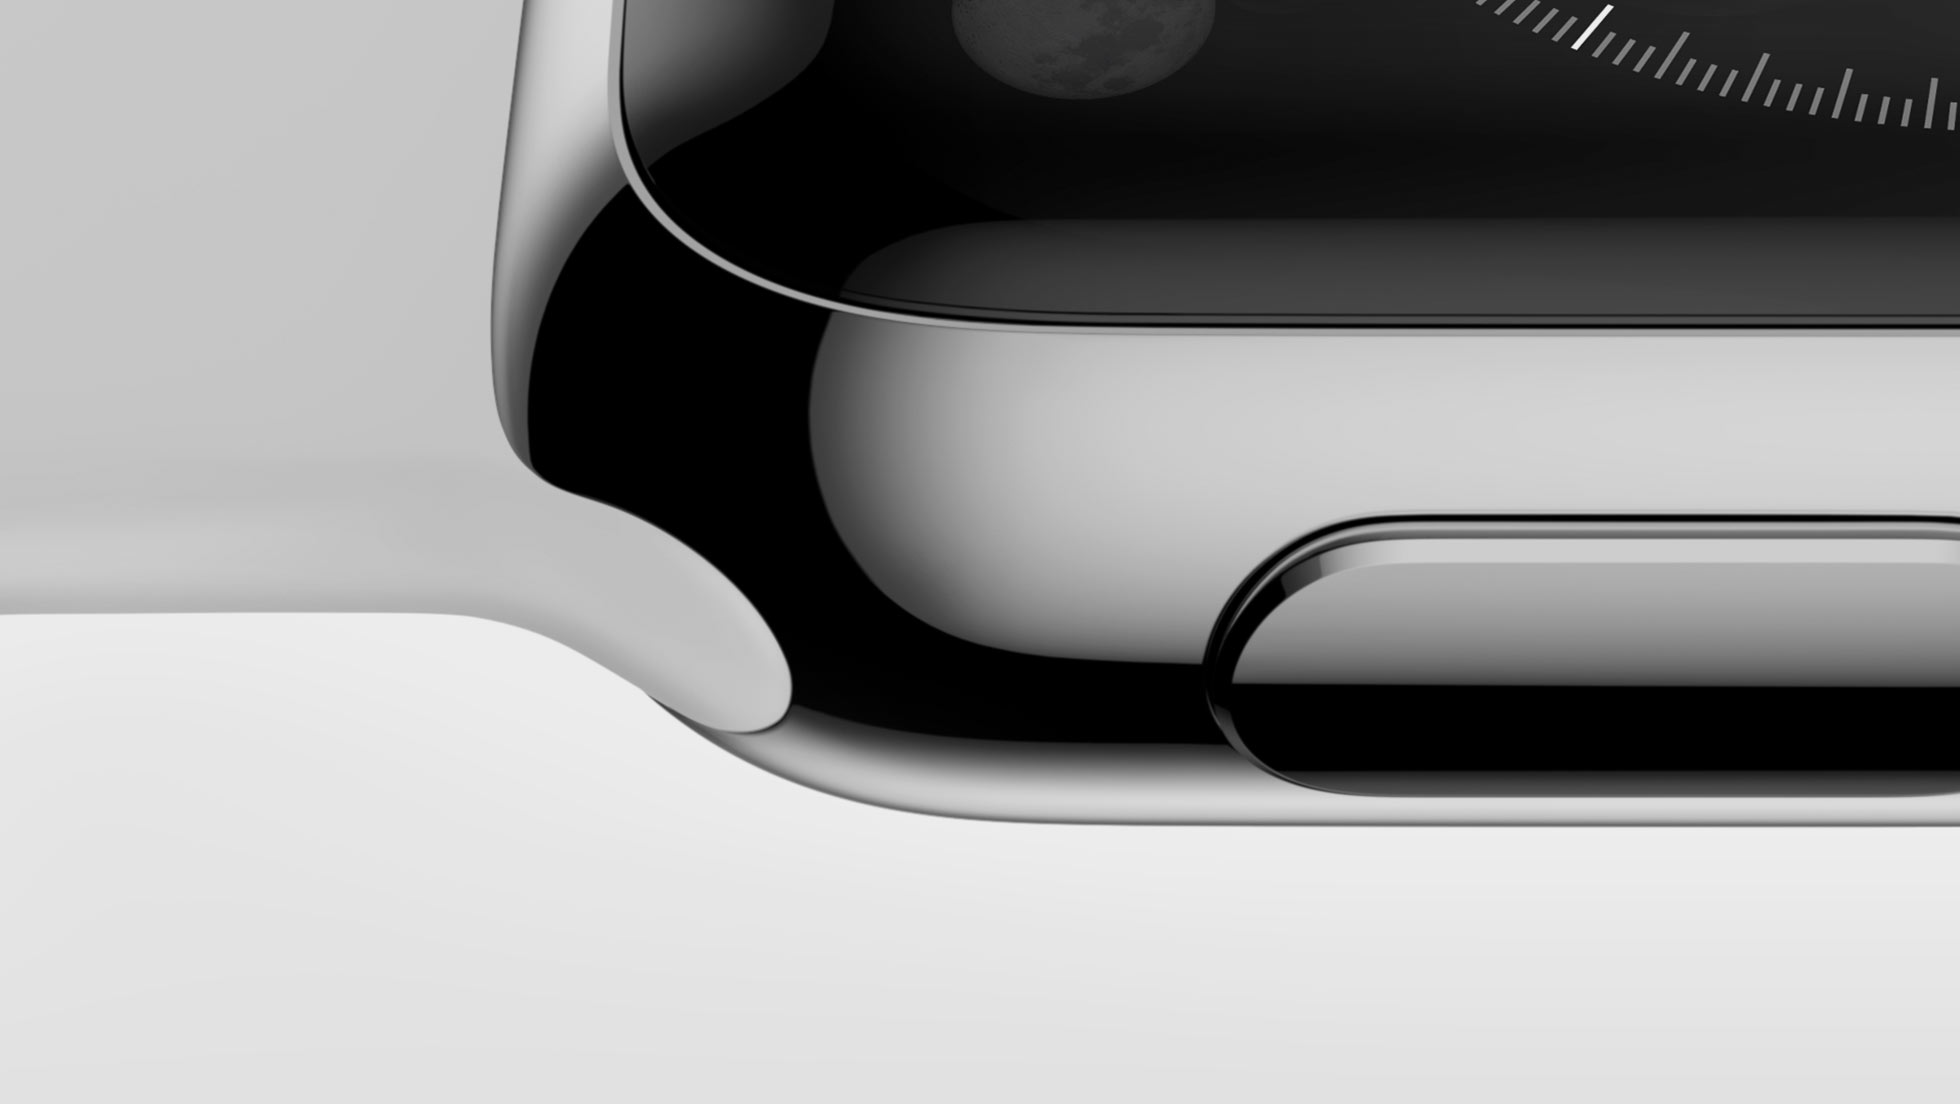 Apple Watch - Official Apple Support